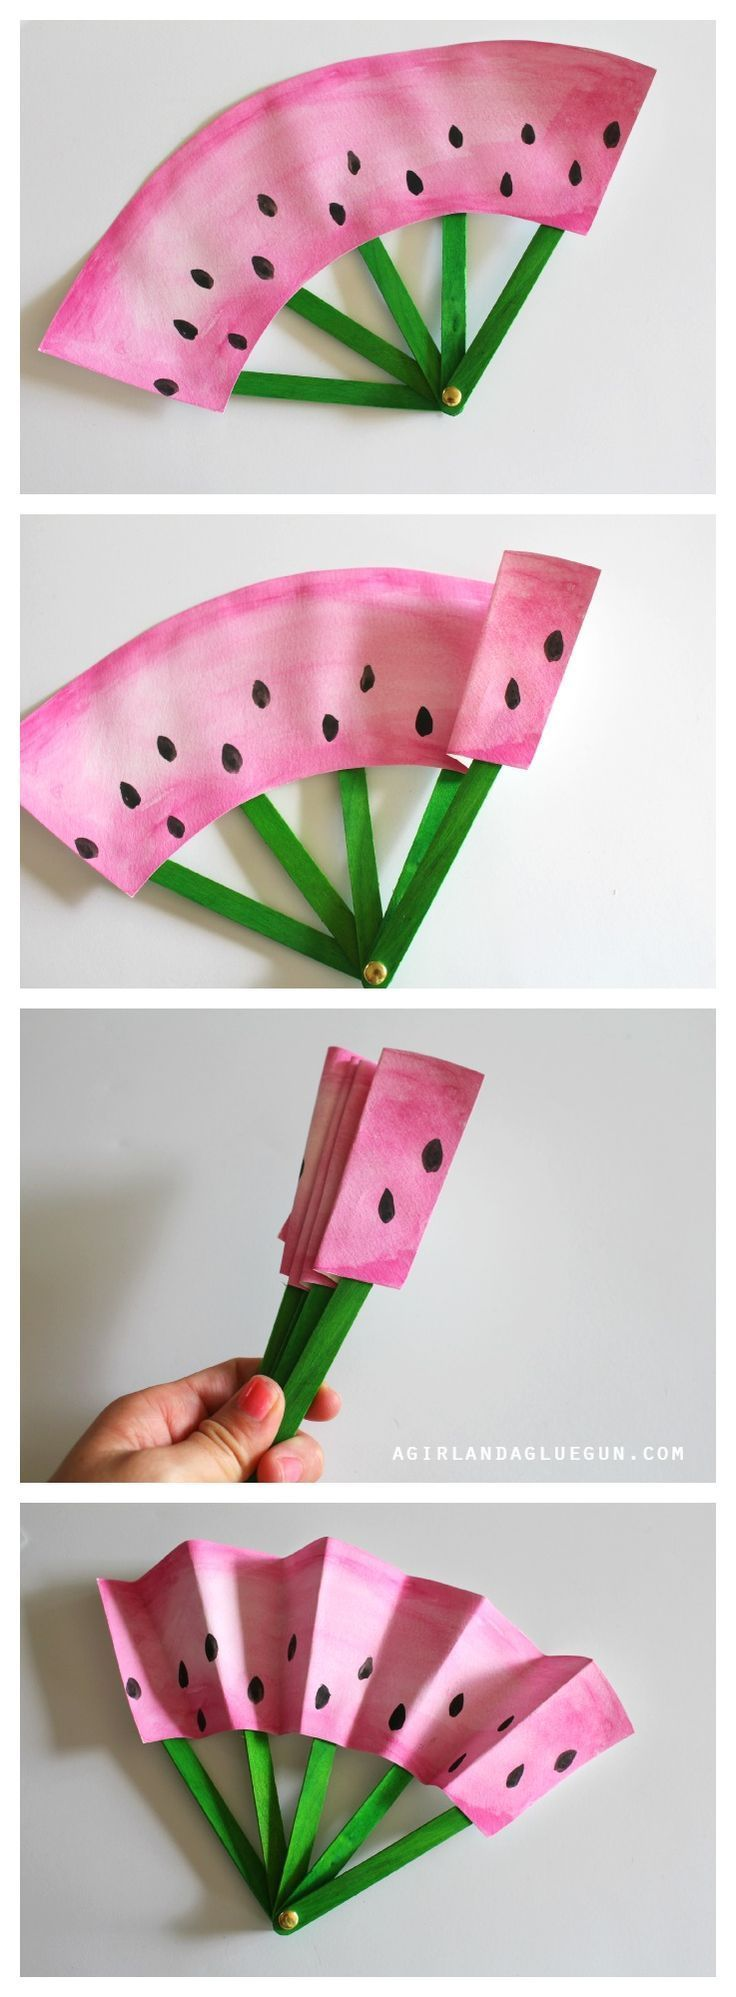 These DIY fruit fans keep parents cool and kids entertained. Try out this craft this weekend!